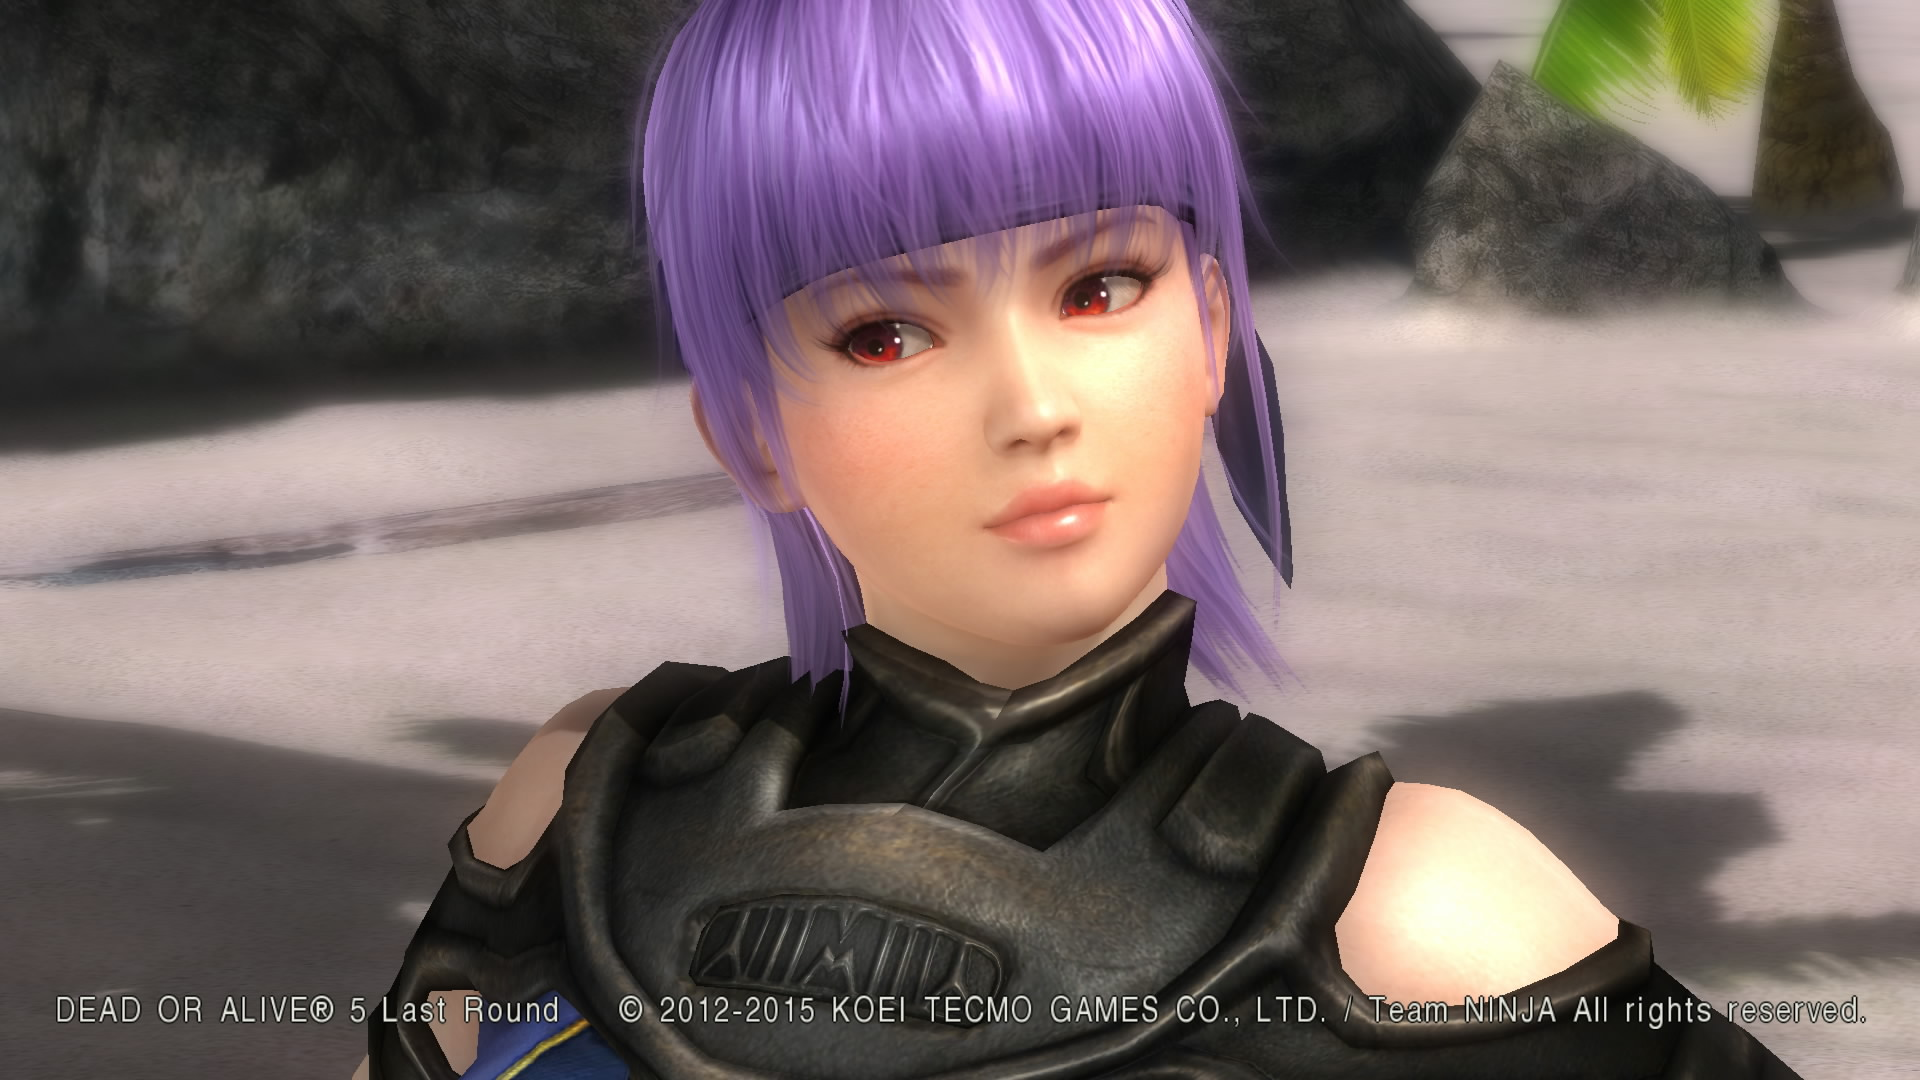 DEAD OR ALIVE 5 Last Round__1 (2).jpg